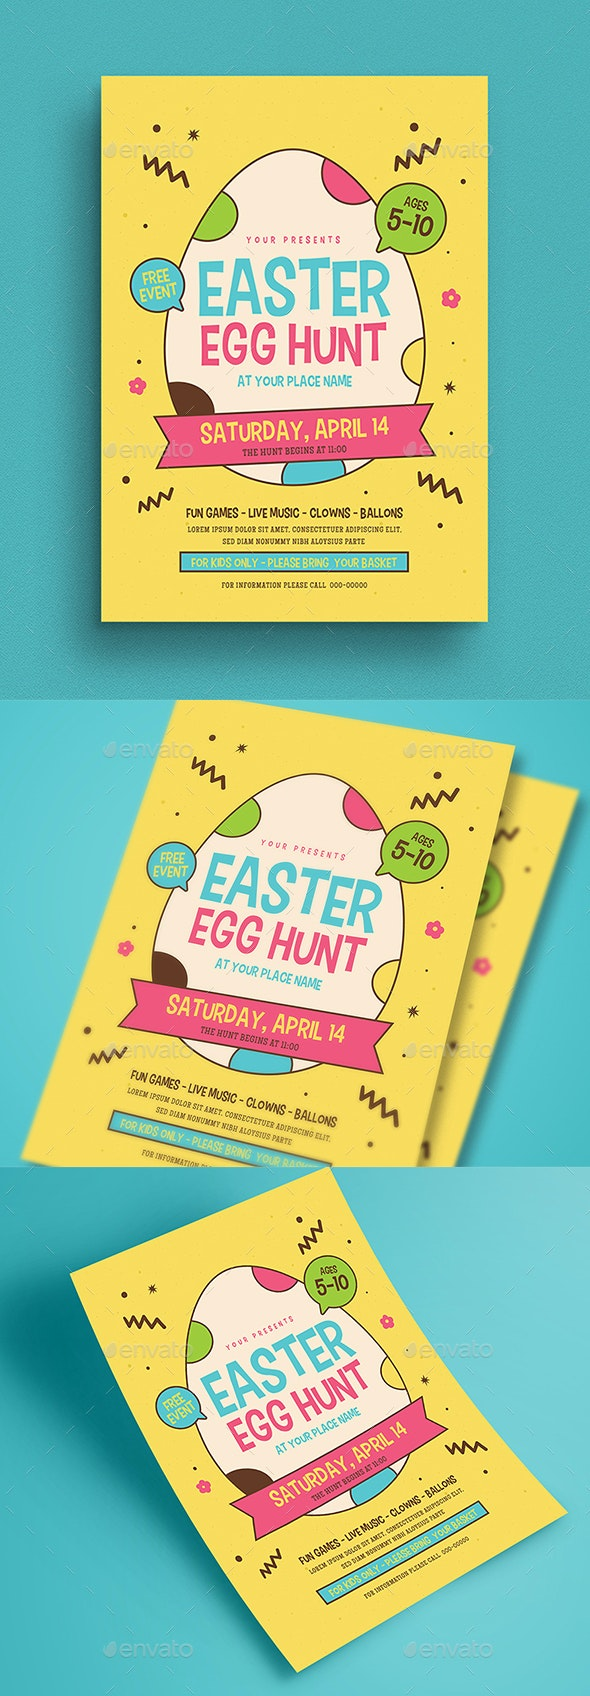 Easter Egg Hunt Event Flyer - Events Flyers